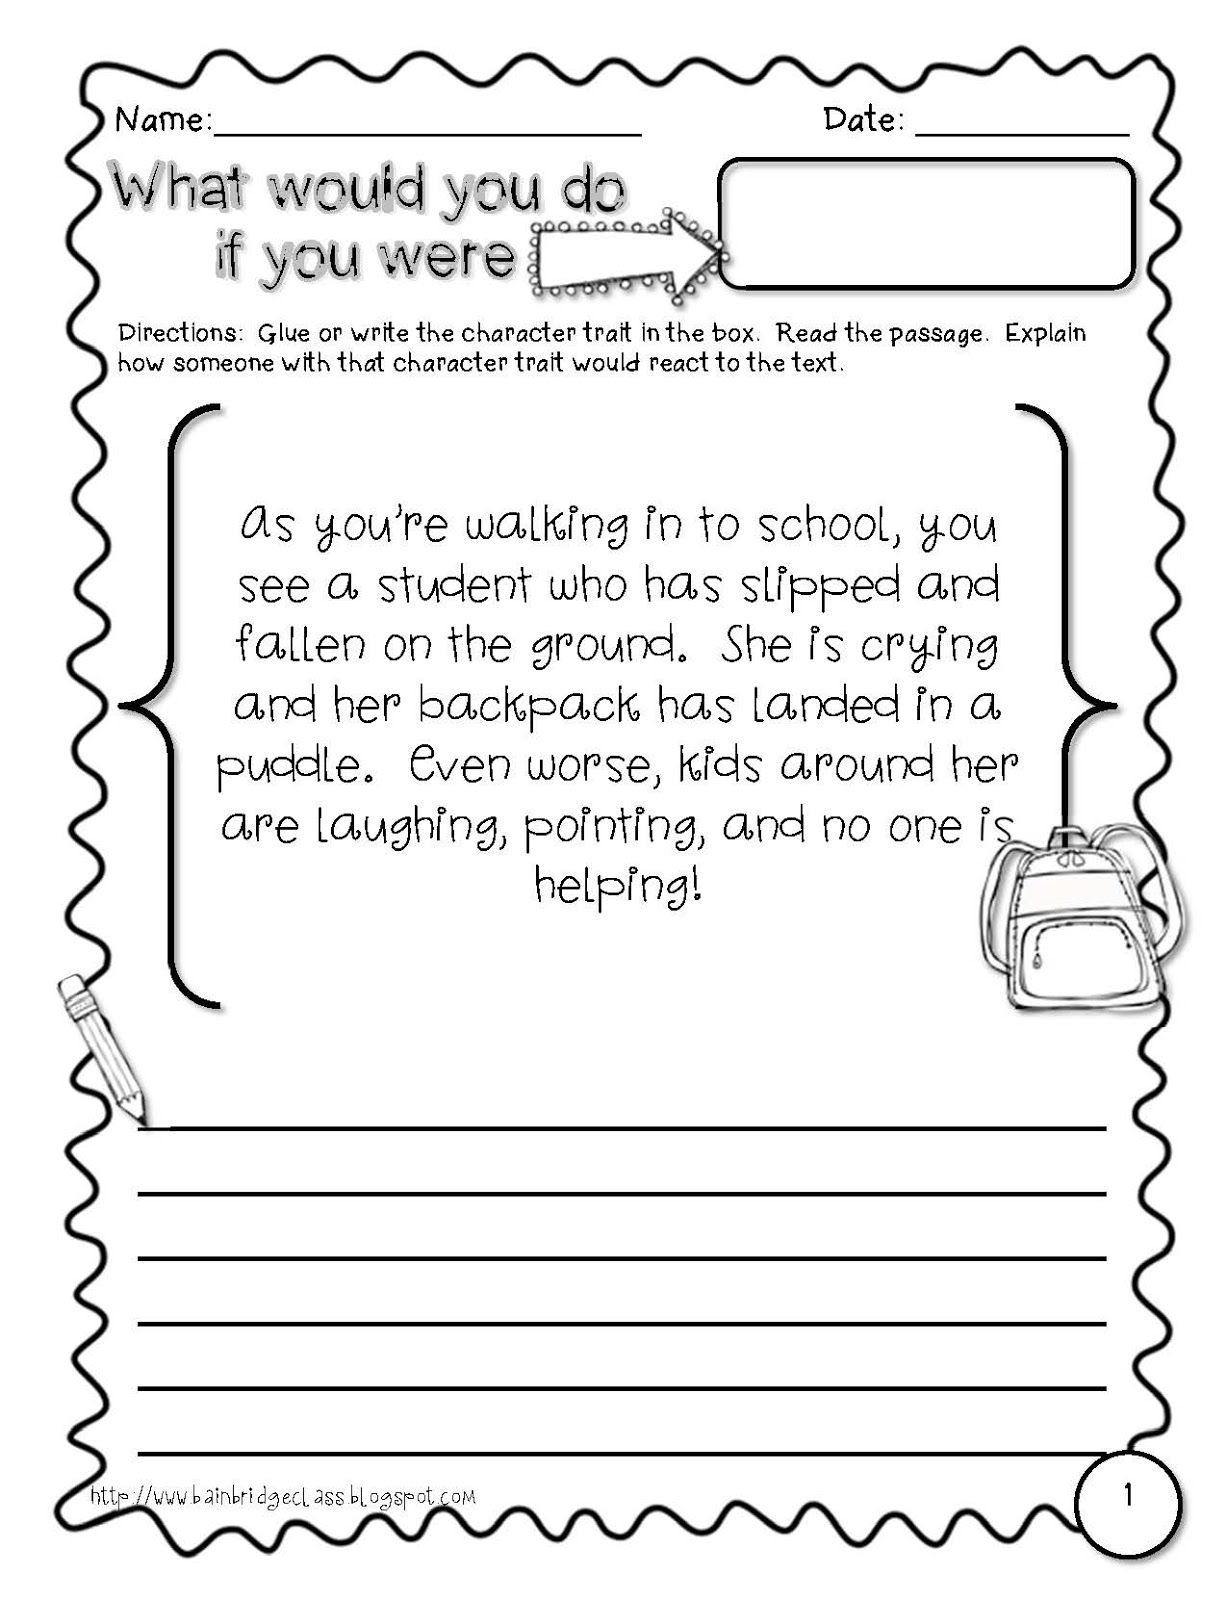 worksheet Character Traits Reading Comprehension Worksheets rl 4 1rl 3 describing characters lessons tes teach common core and so much more first week of school character